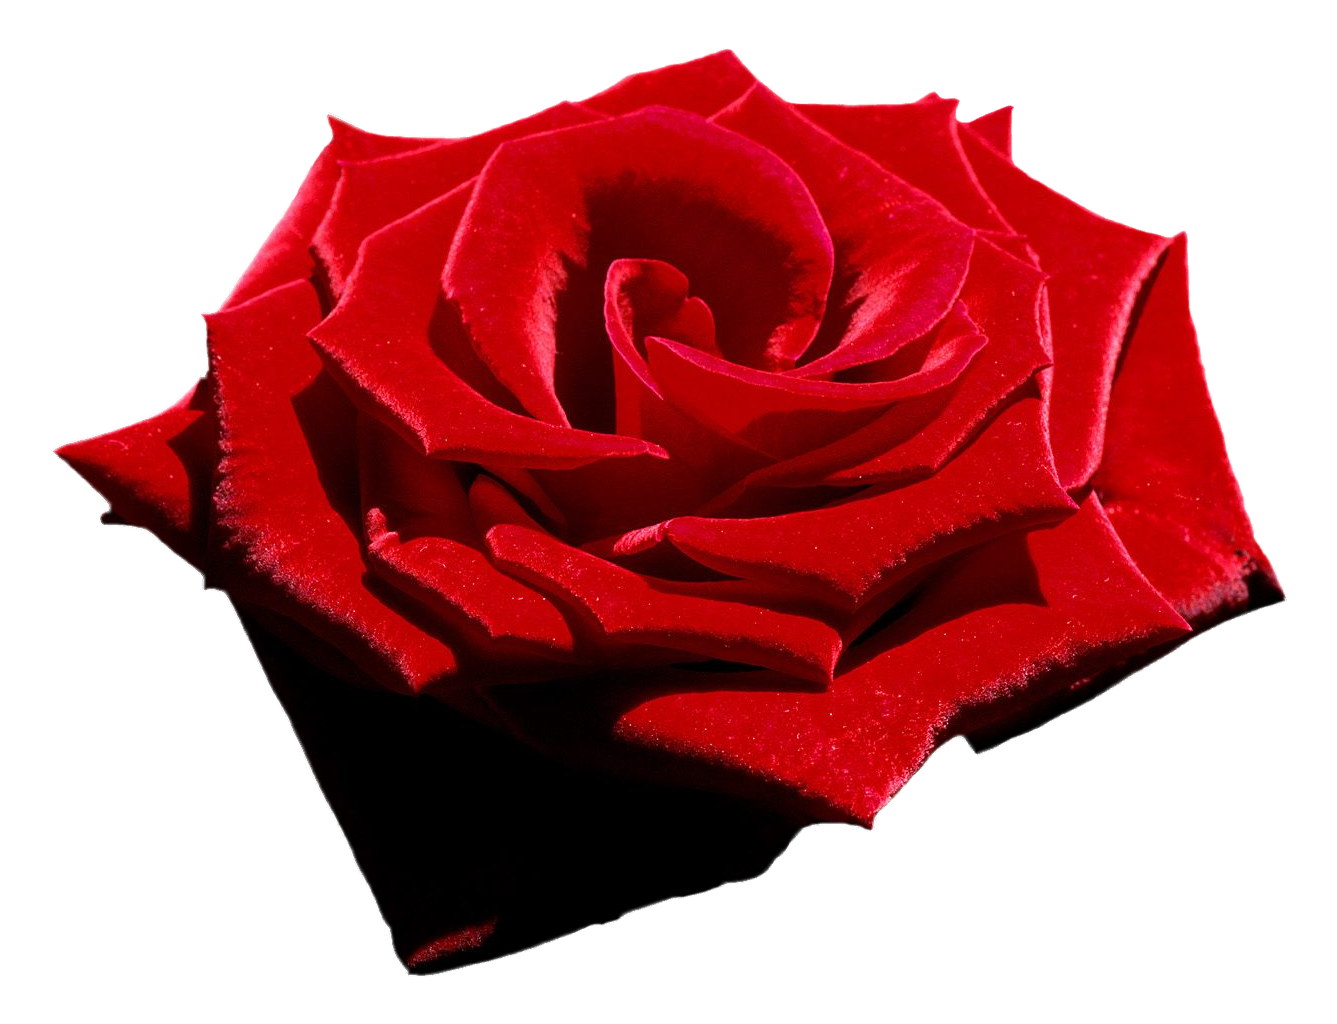 Velvet Red Rose, Png file, Attention only the maximum.